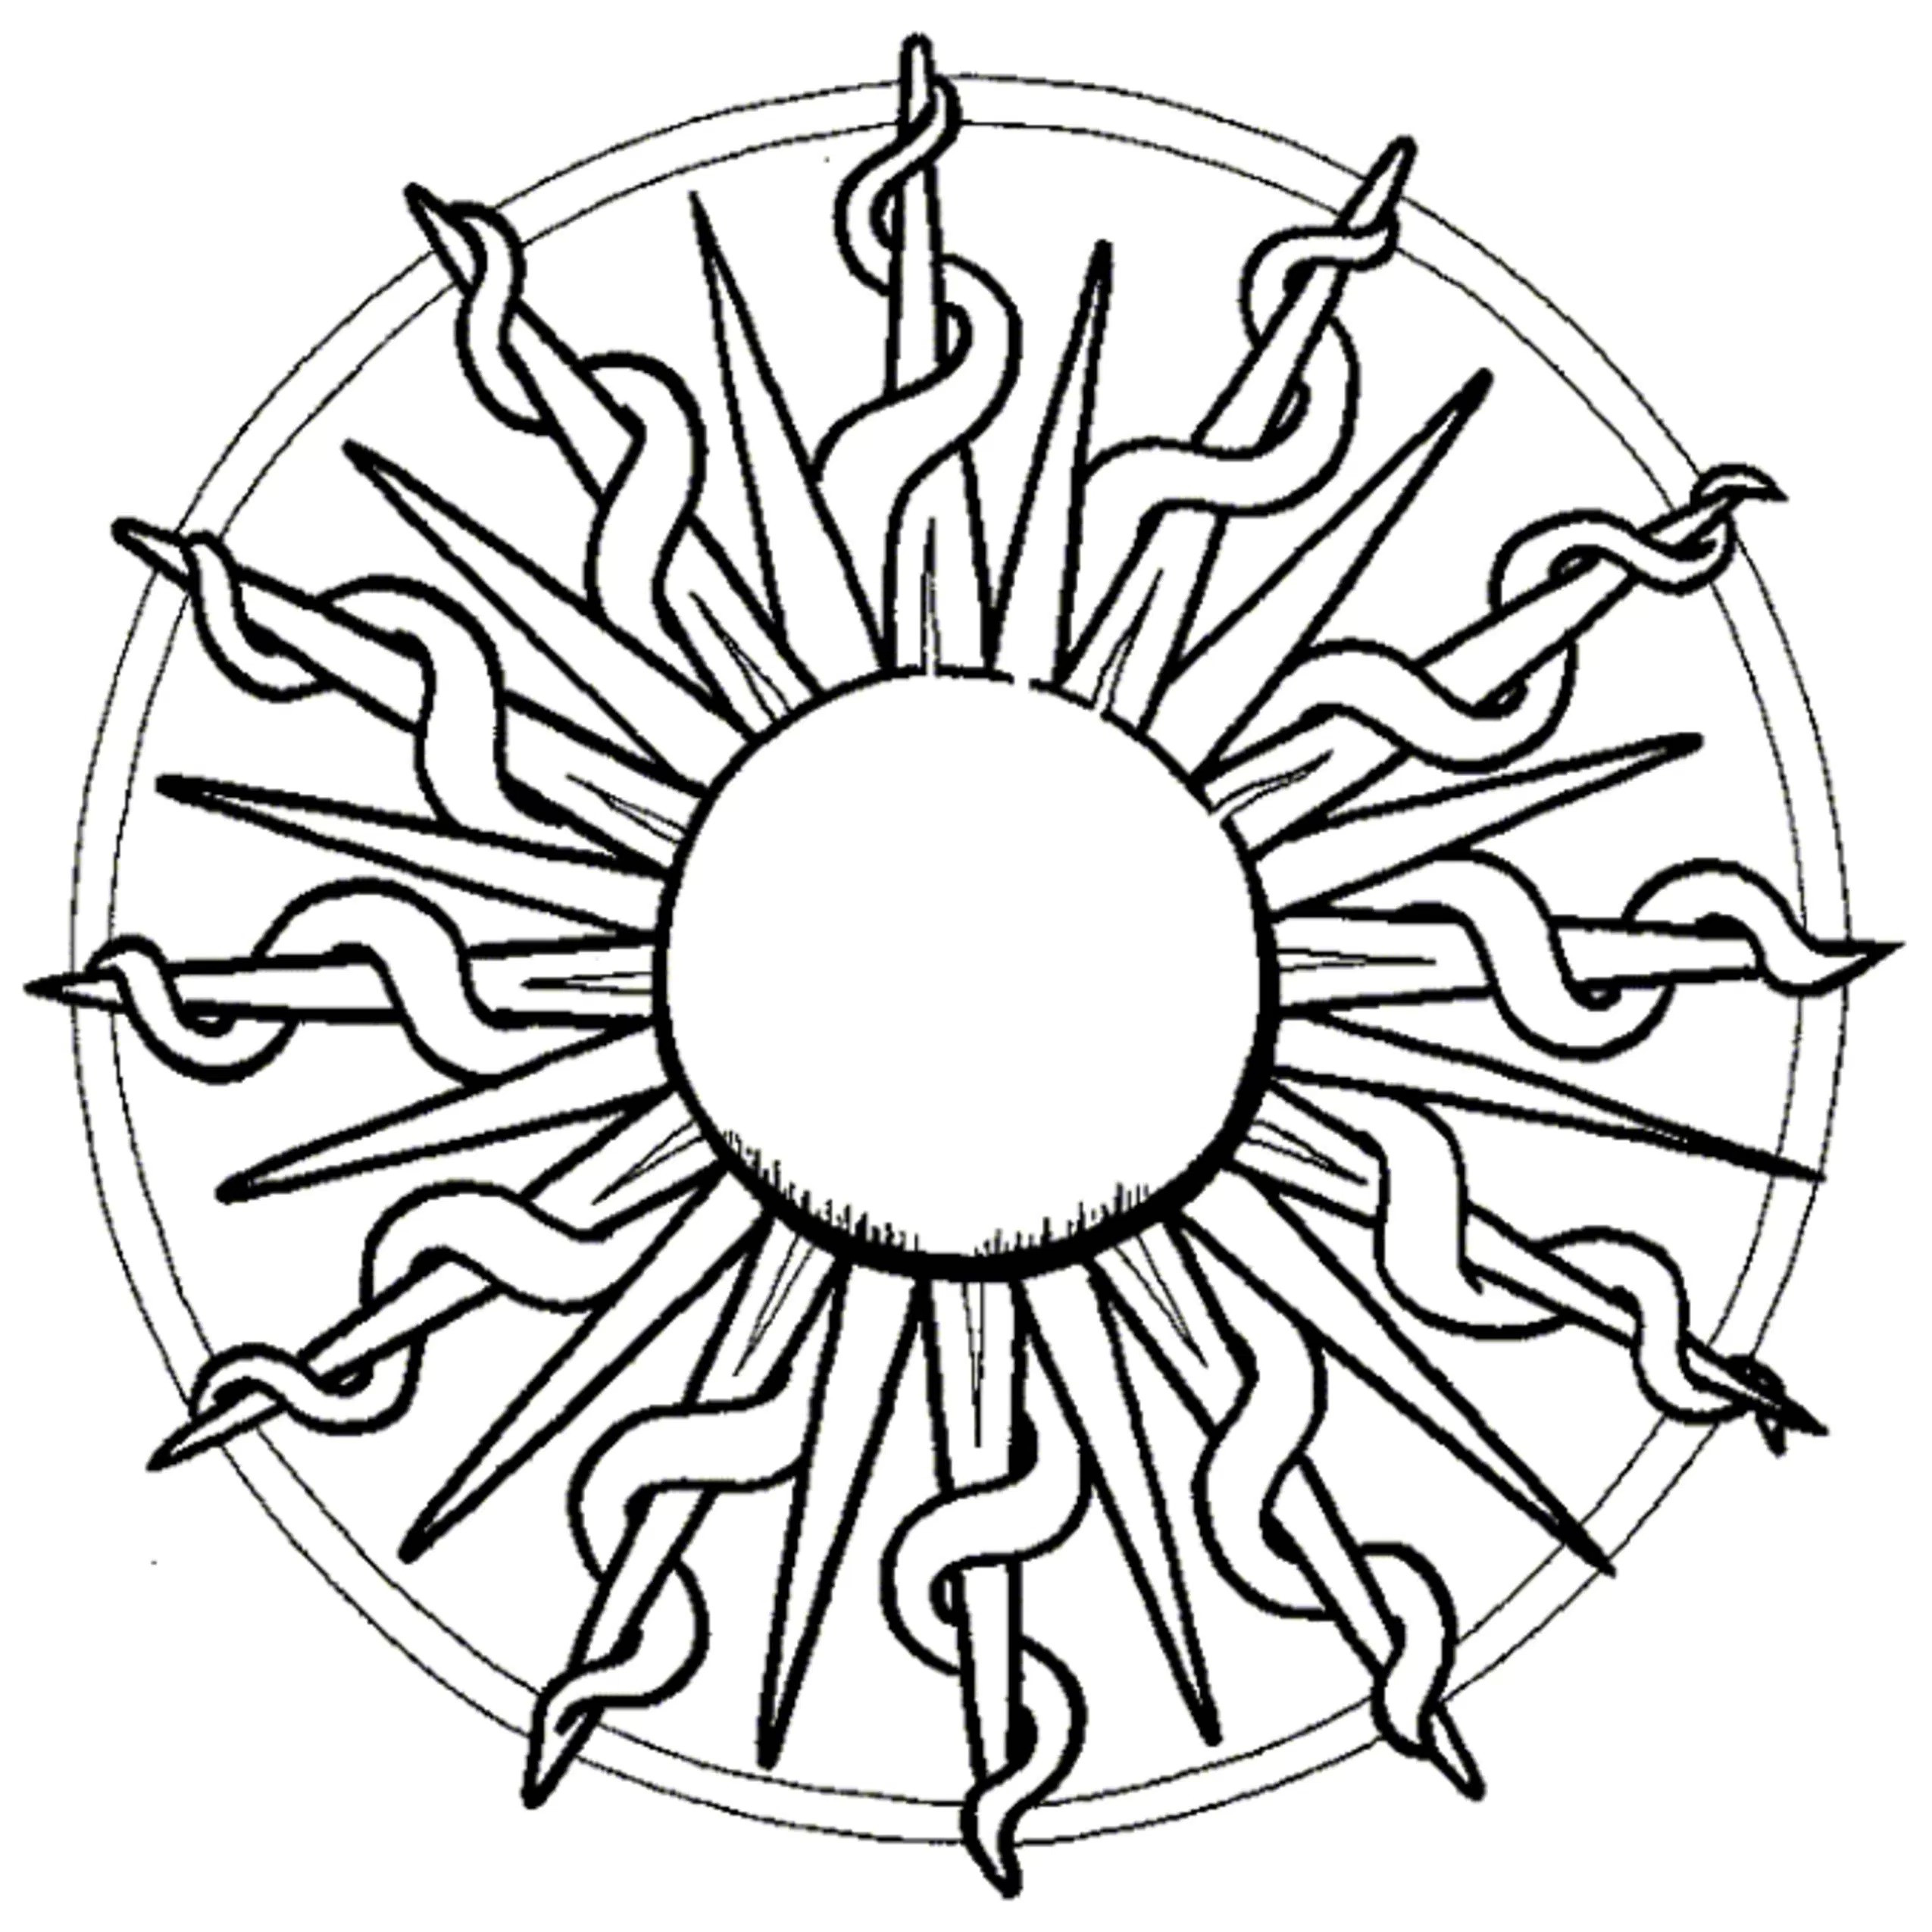 2550x2550 Sun Coloring Pages For Adults Acpra